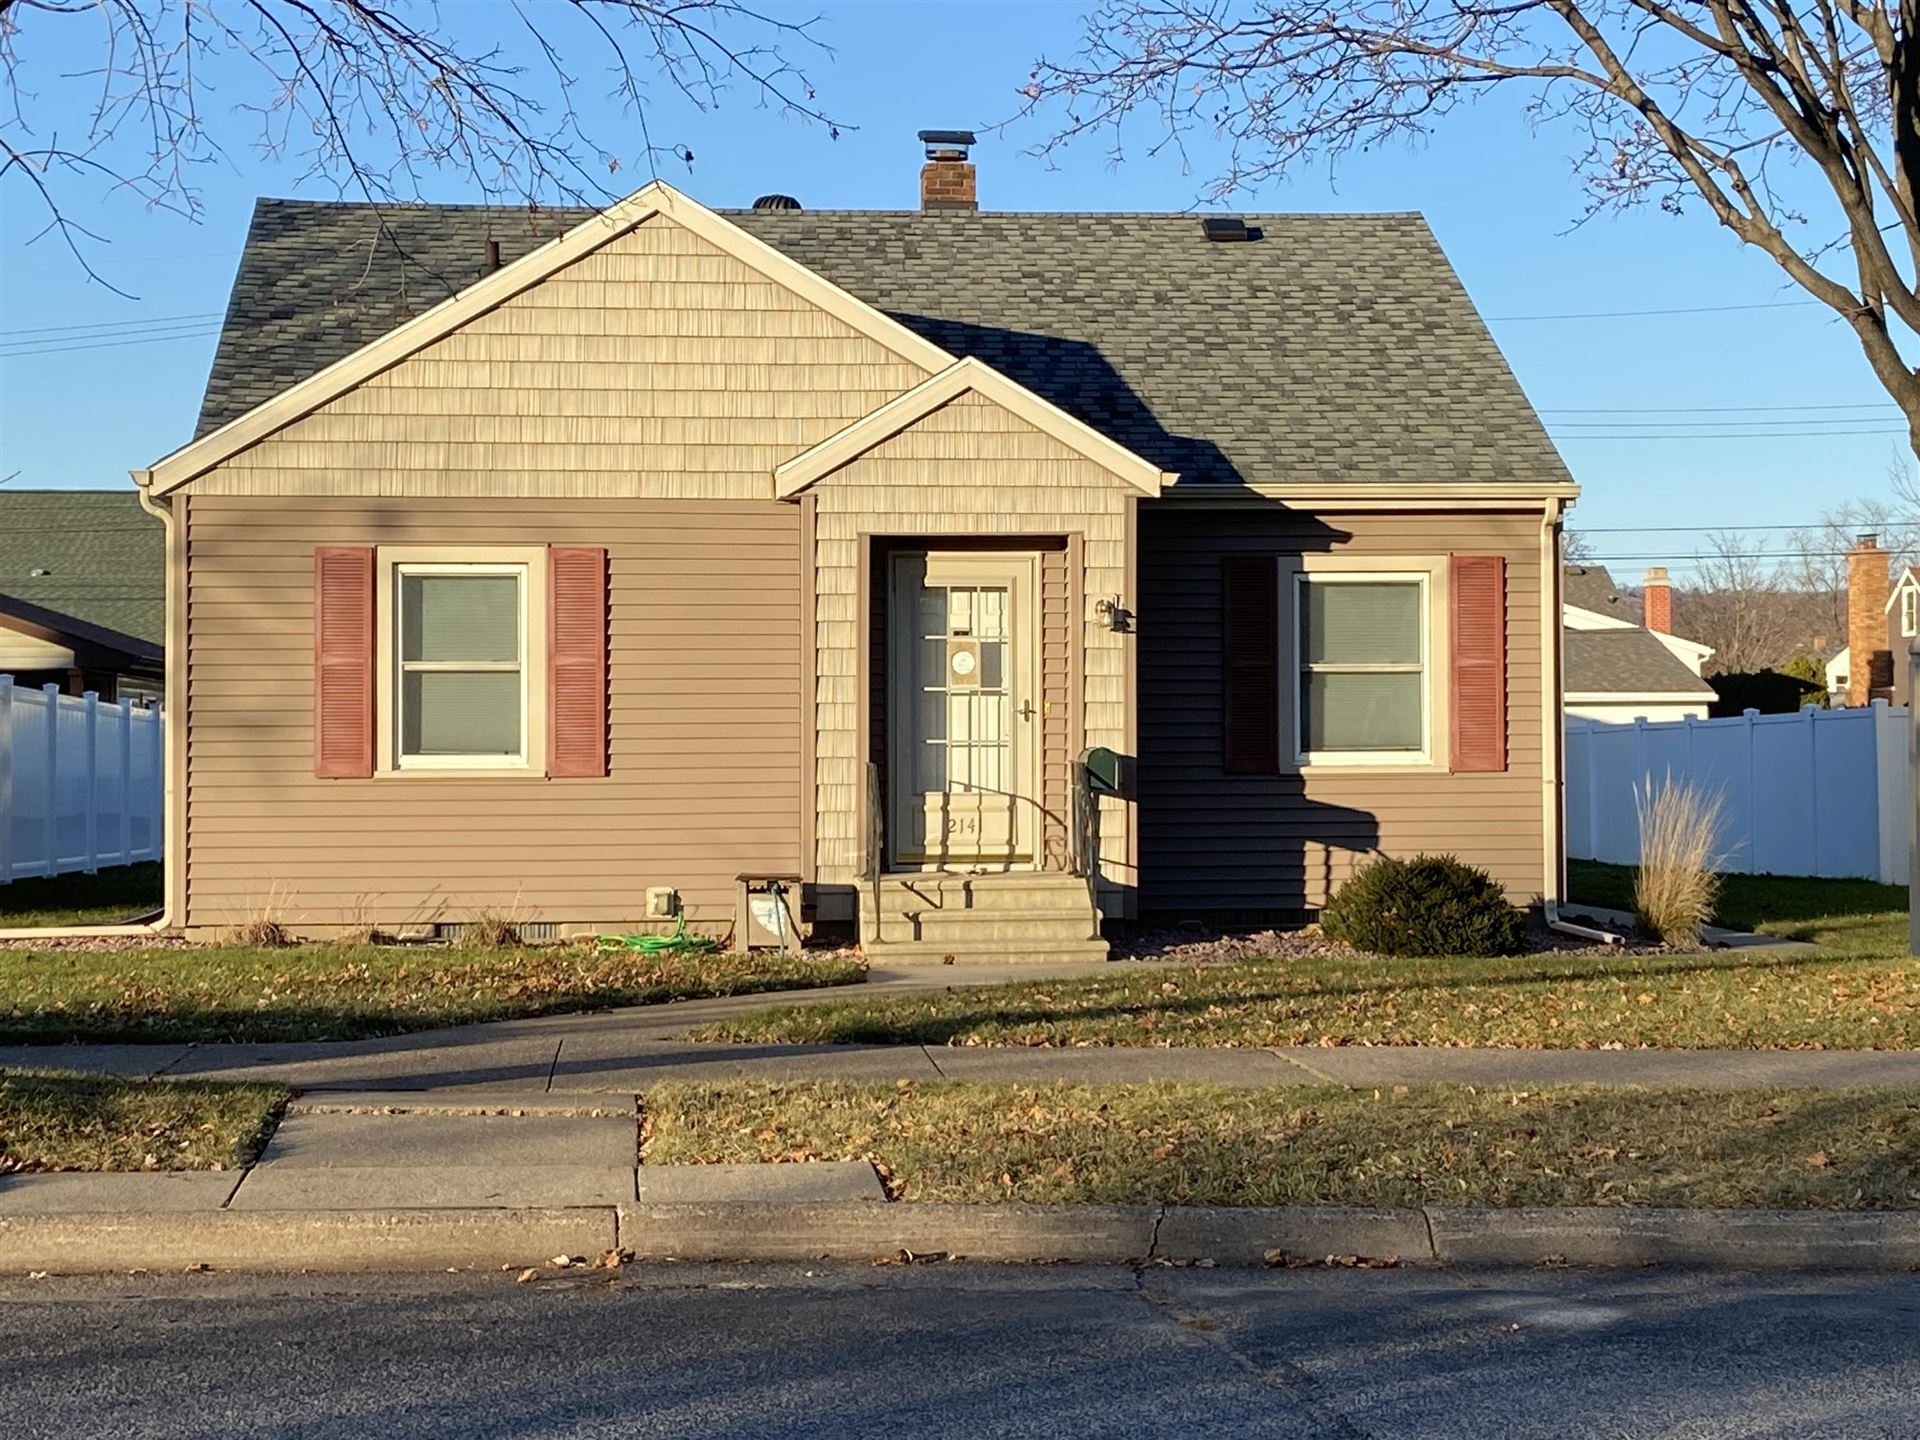 2141 Redfield St, La Crosse, WI 54601 - MLS#: 1720055